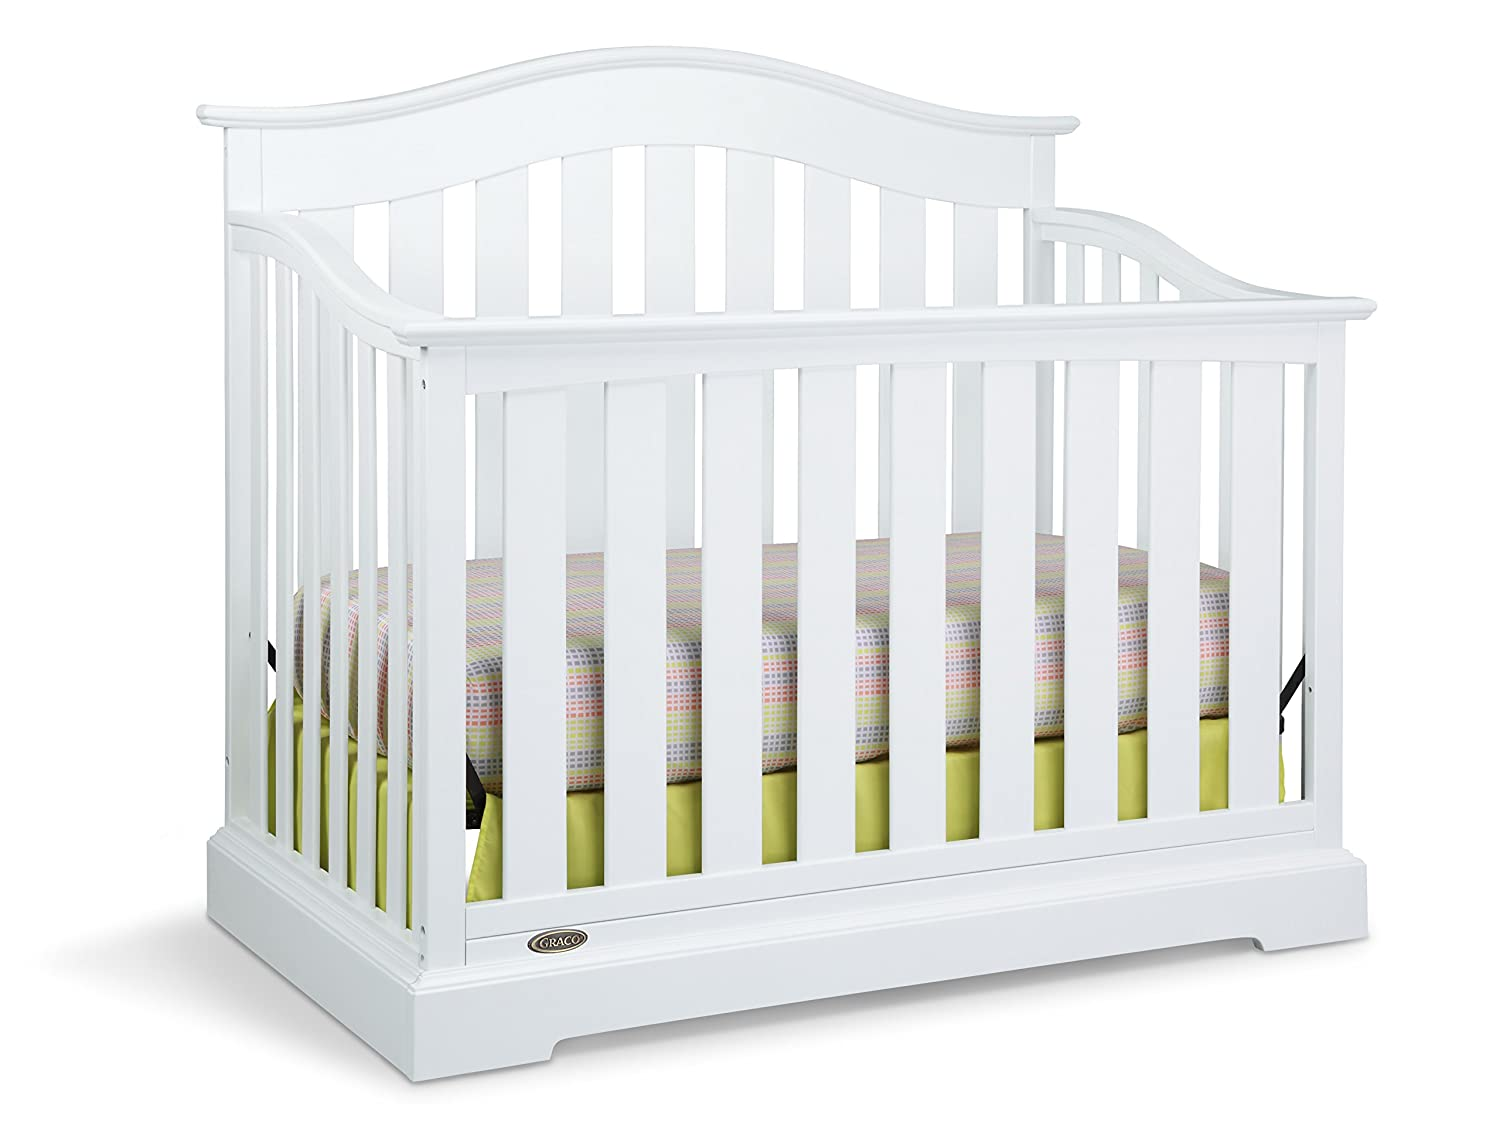 Graco Westbrook 4-in-1 Convertible Crib, White Stork Craft Manufacturing (USA) Inc. 04550-041